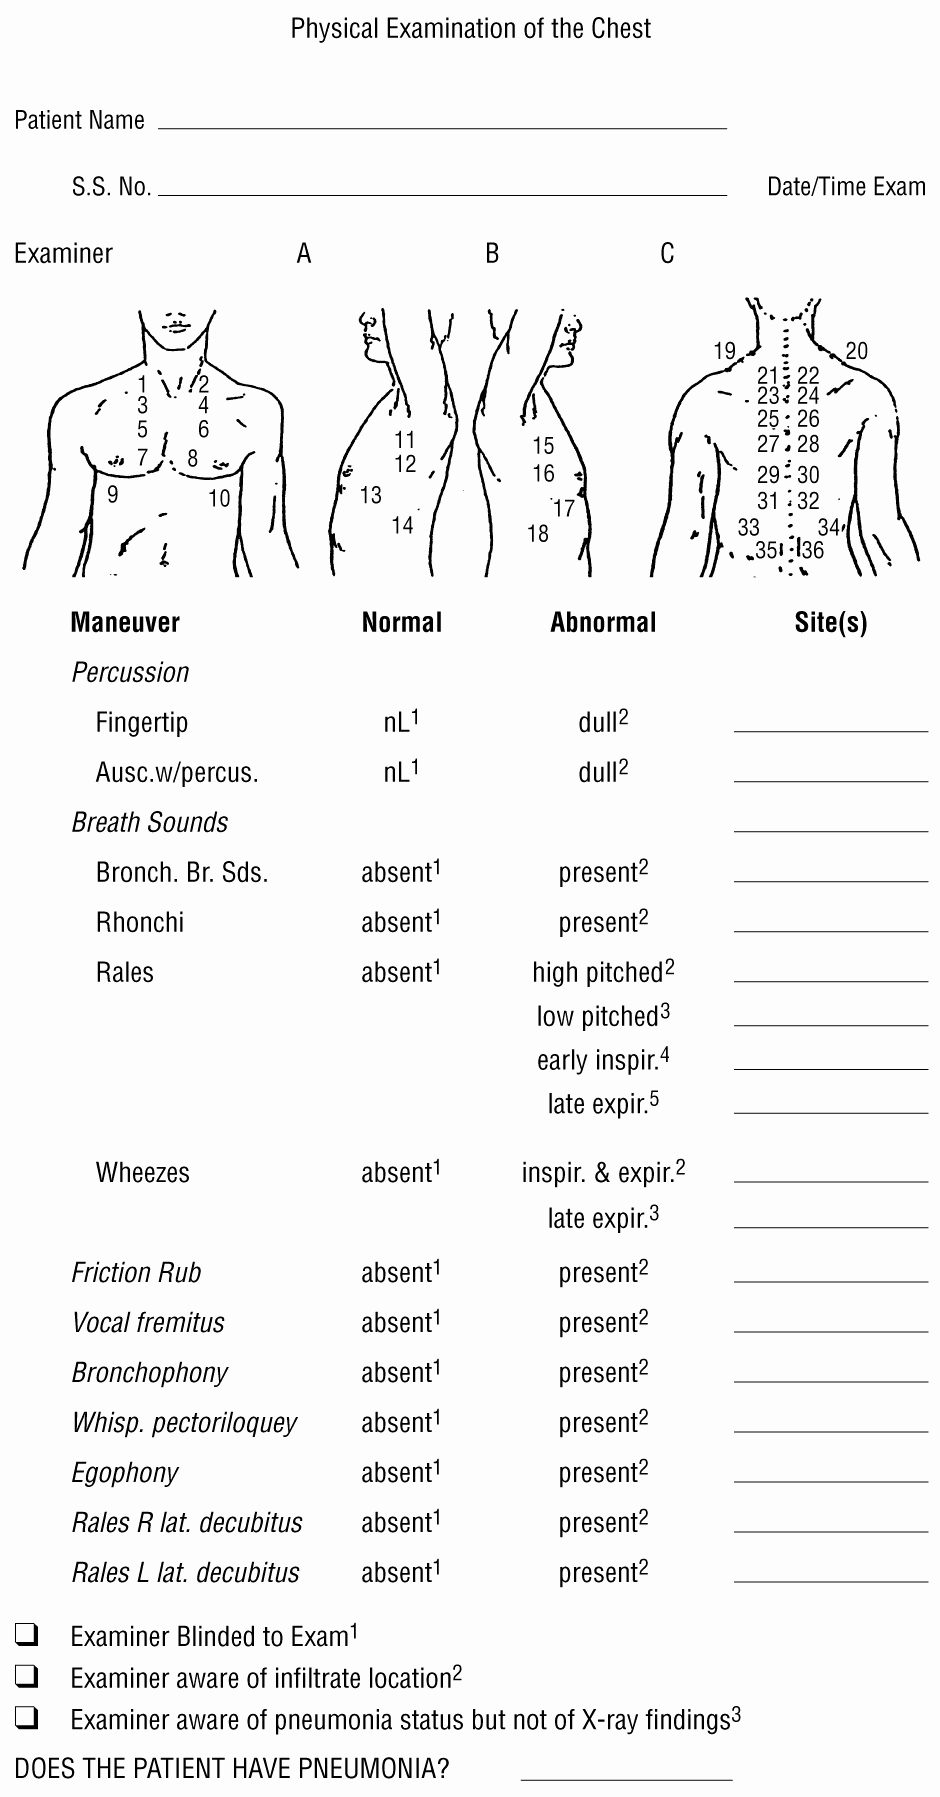 Physical therapy Initial Evaluation Template Luxury Diagnosing Pneumonia by Physical Examination